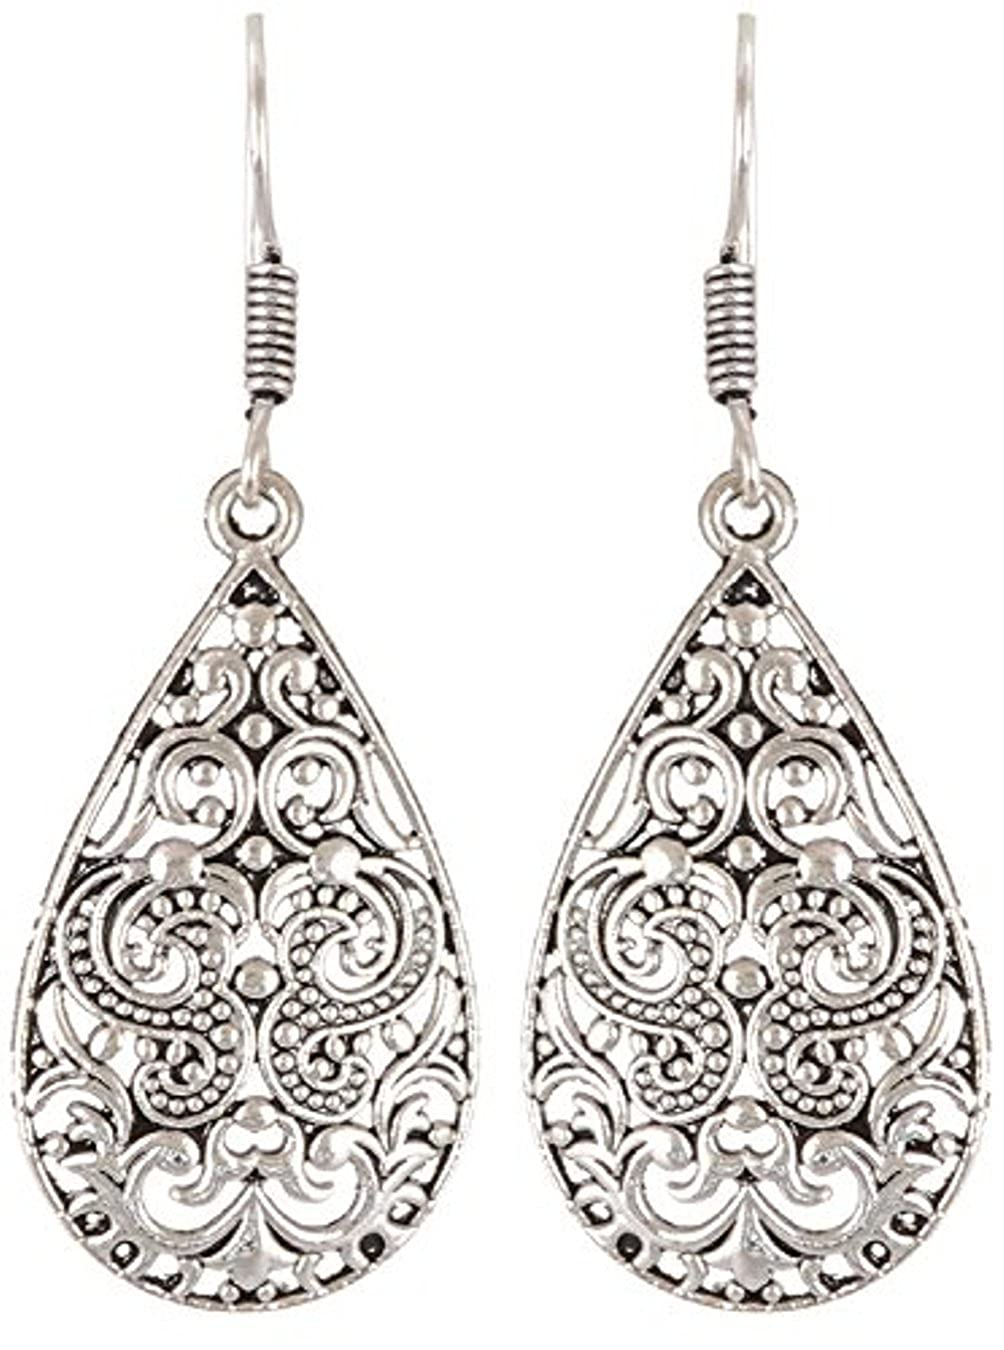 Subharpit Trendy Floral Light Weight Alloy Traditional Indian Dangle Earring for Woman /& Girls